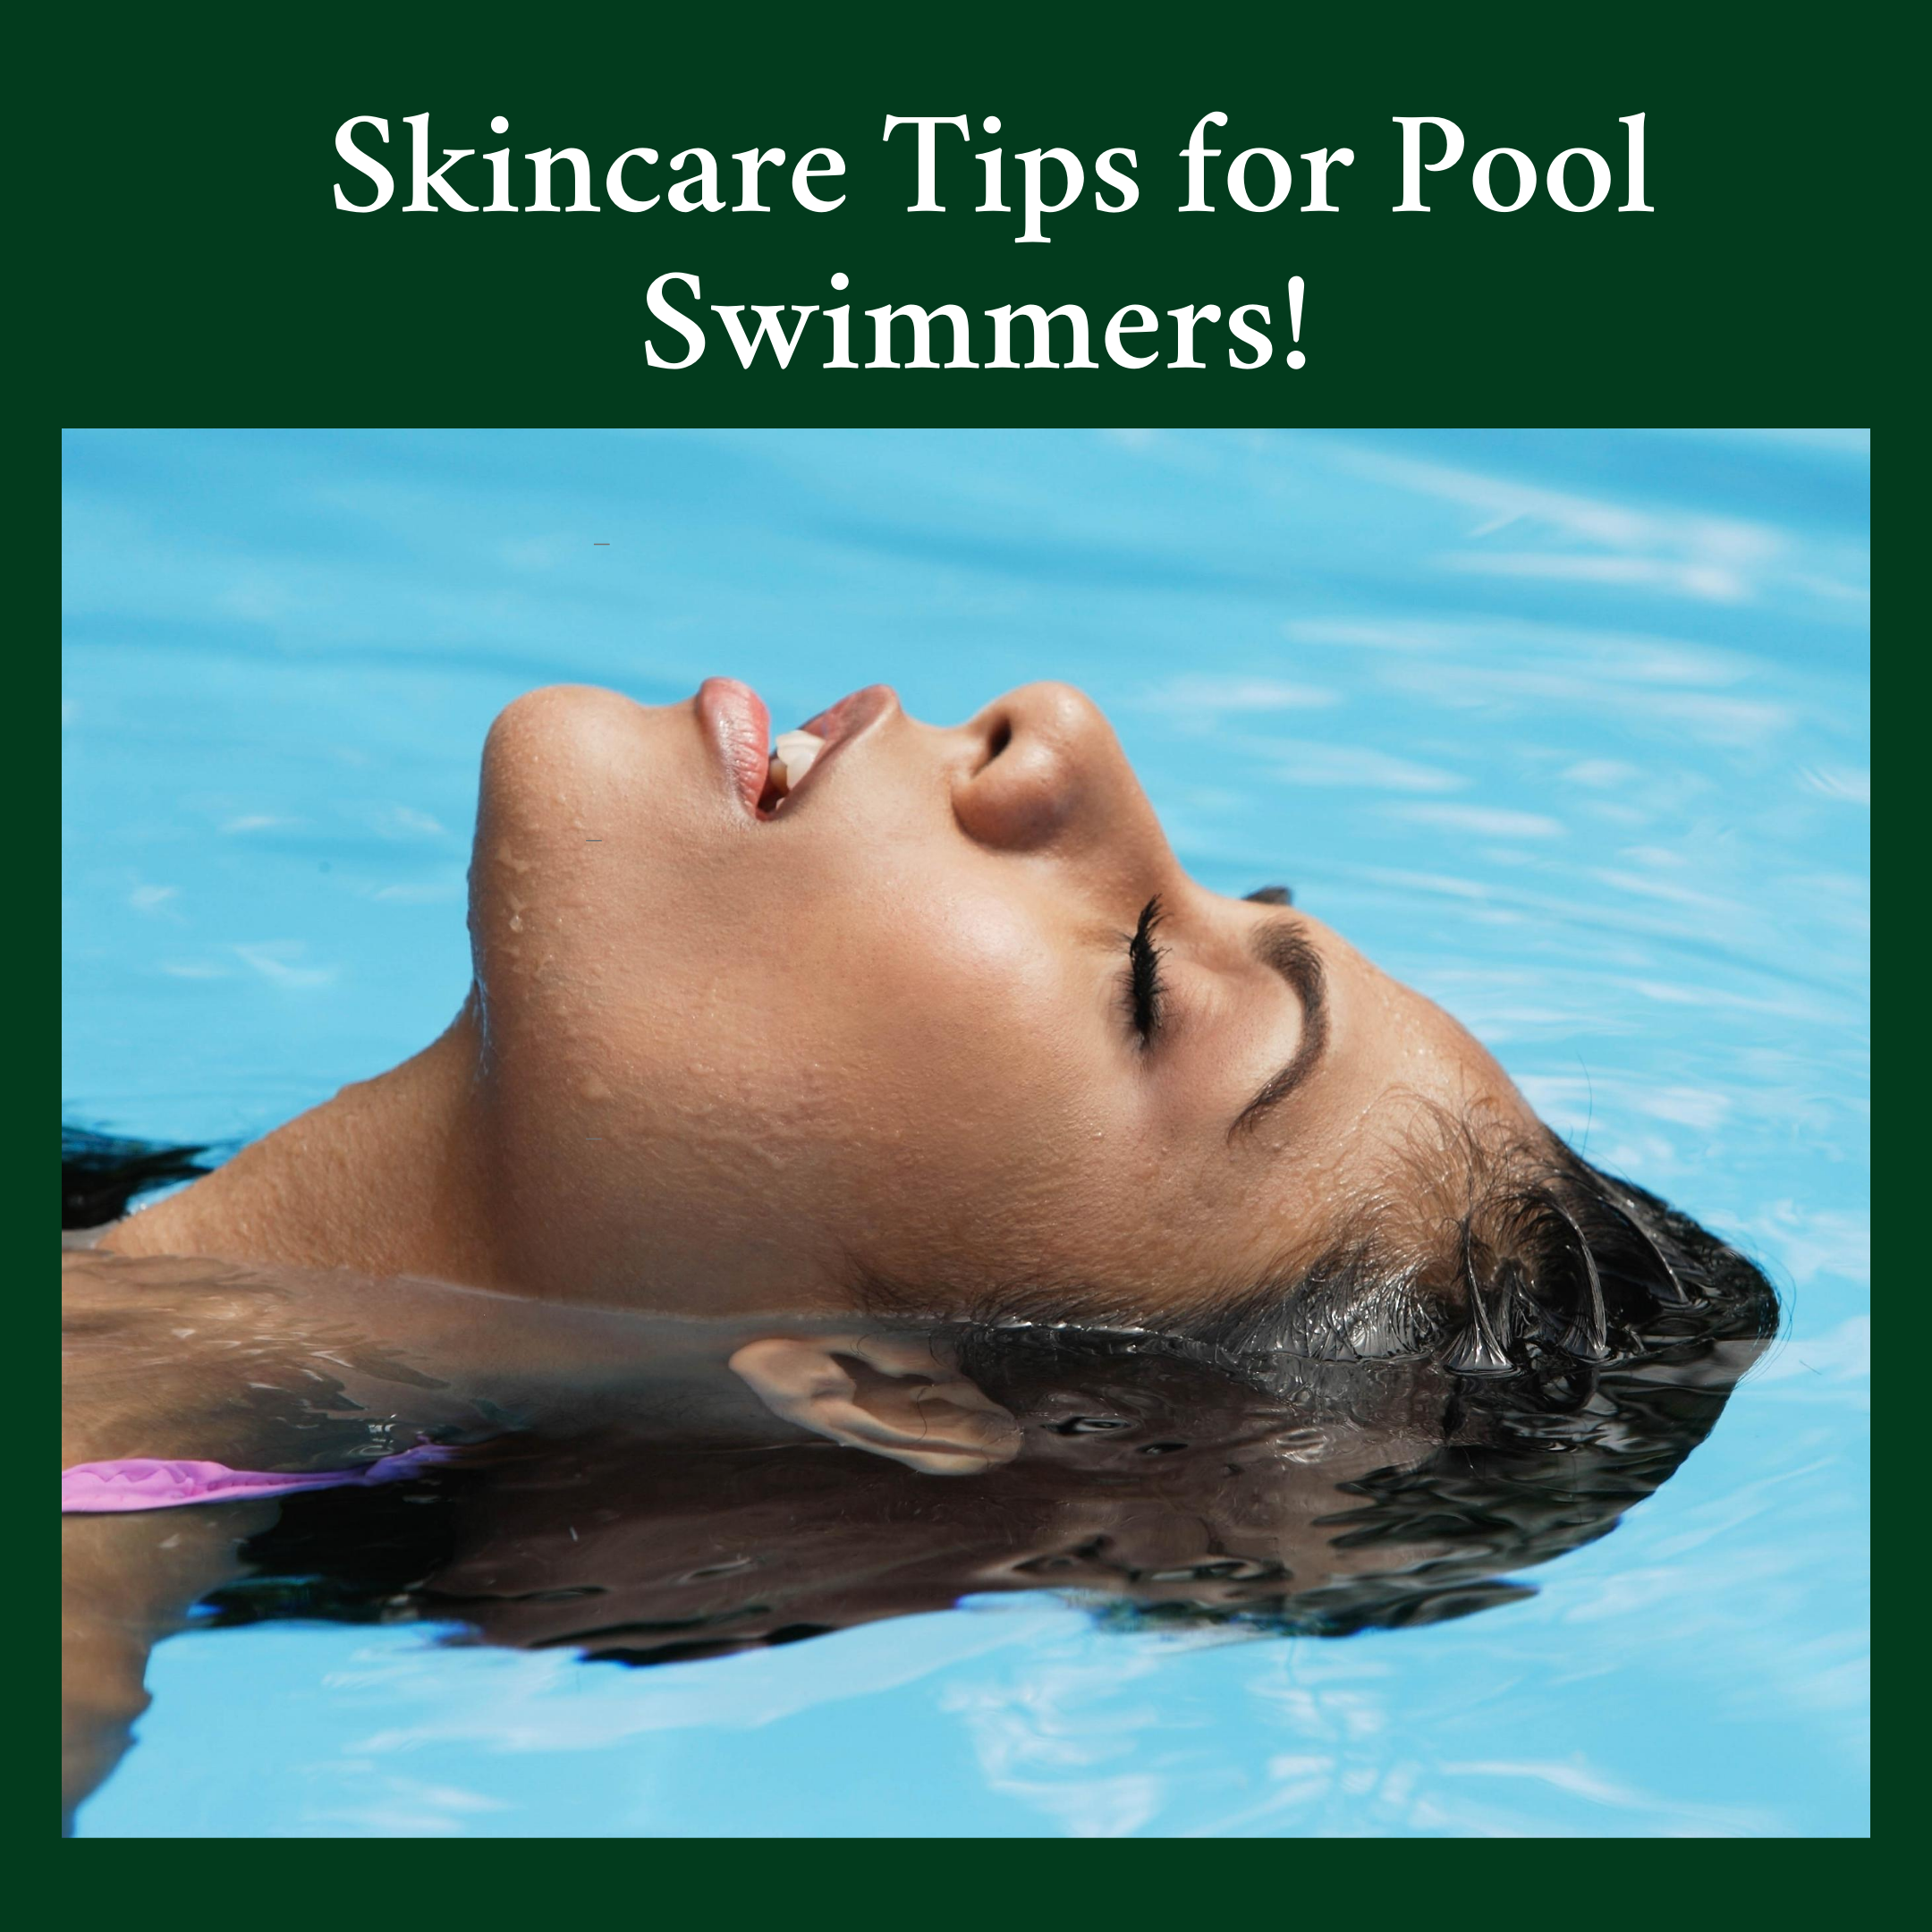 Skincare Tips for Pool Swimmers this Summer